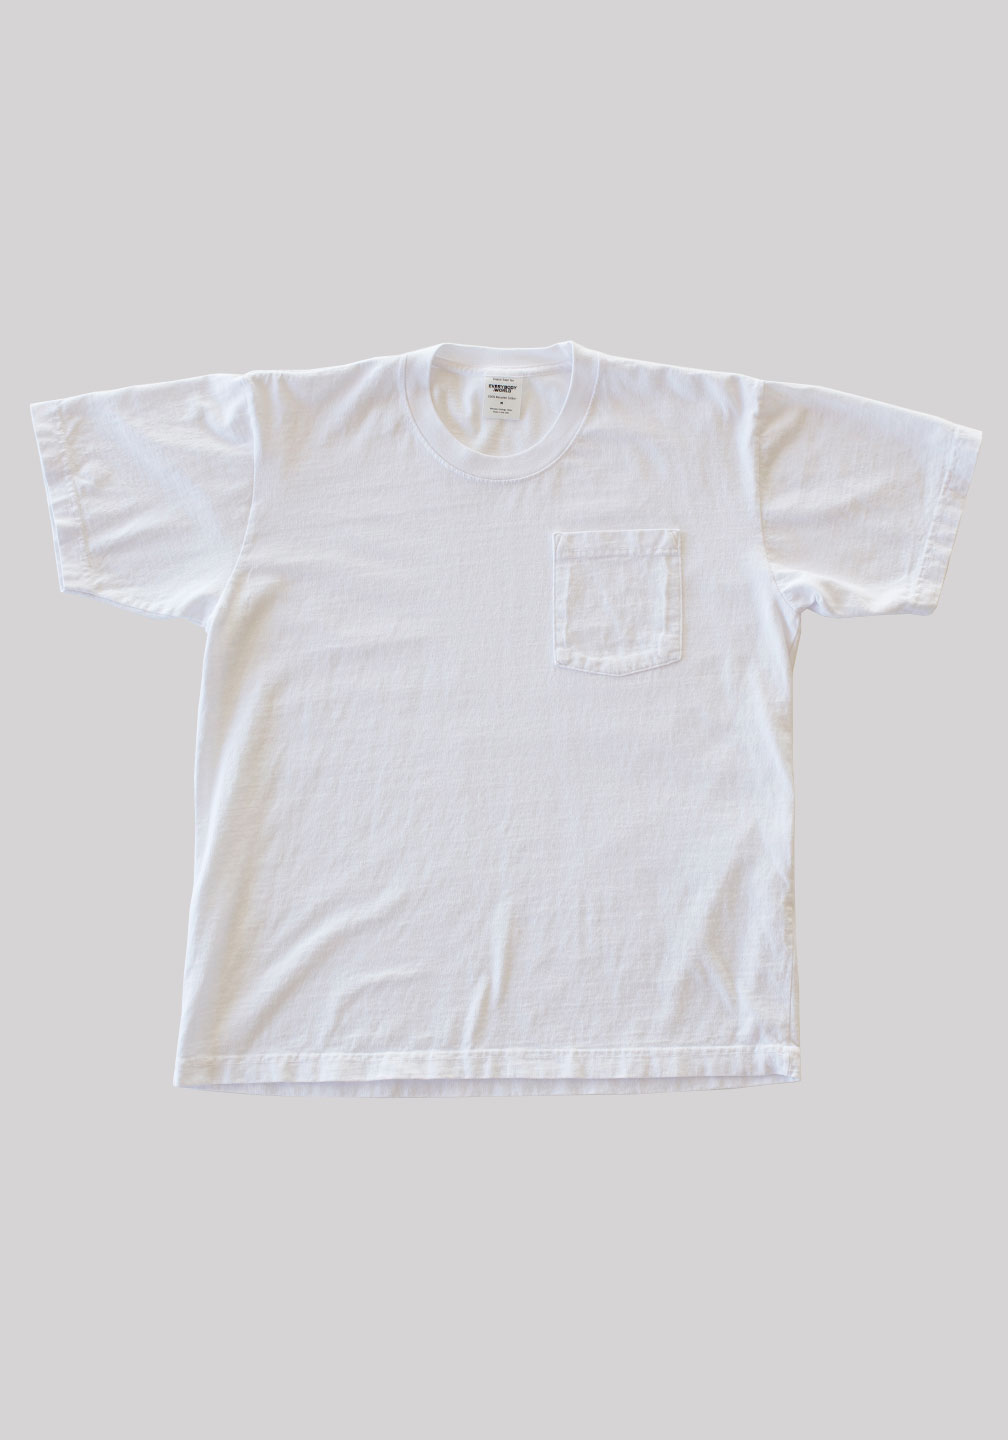 PocketTrashTee_Rotating_001